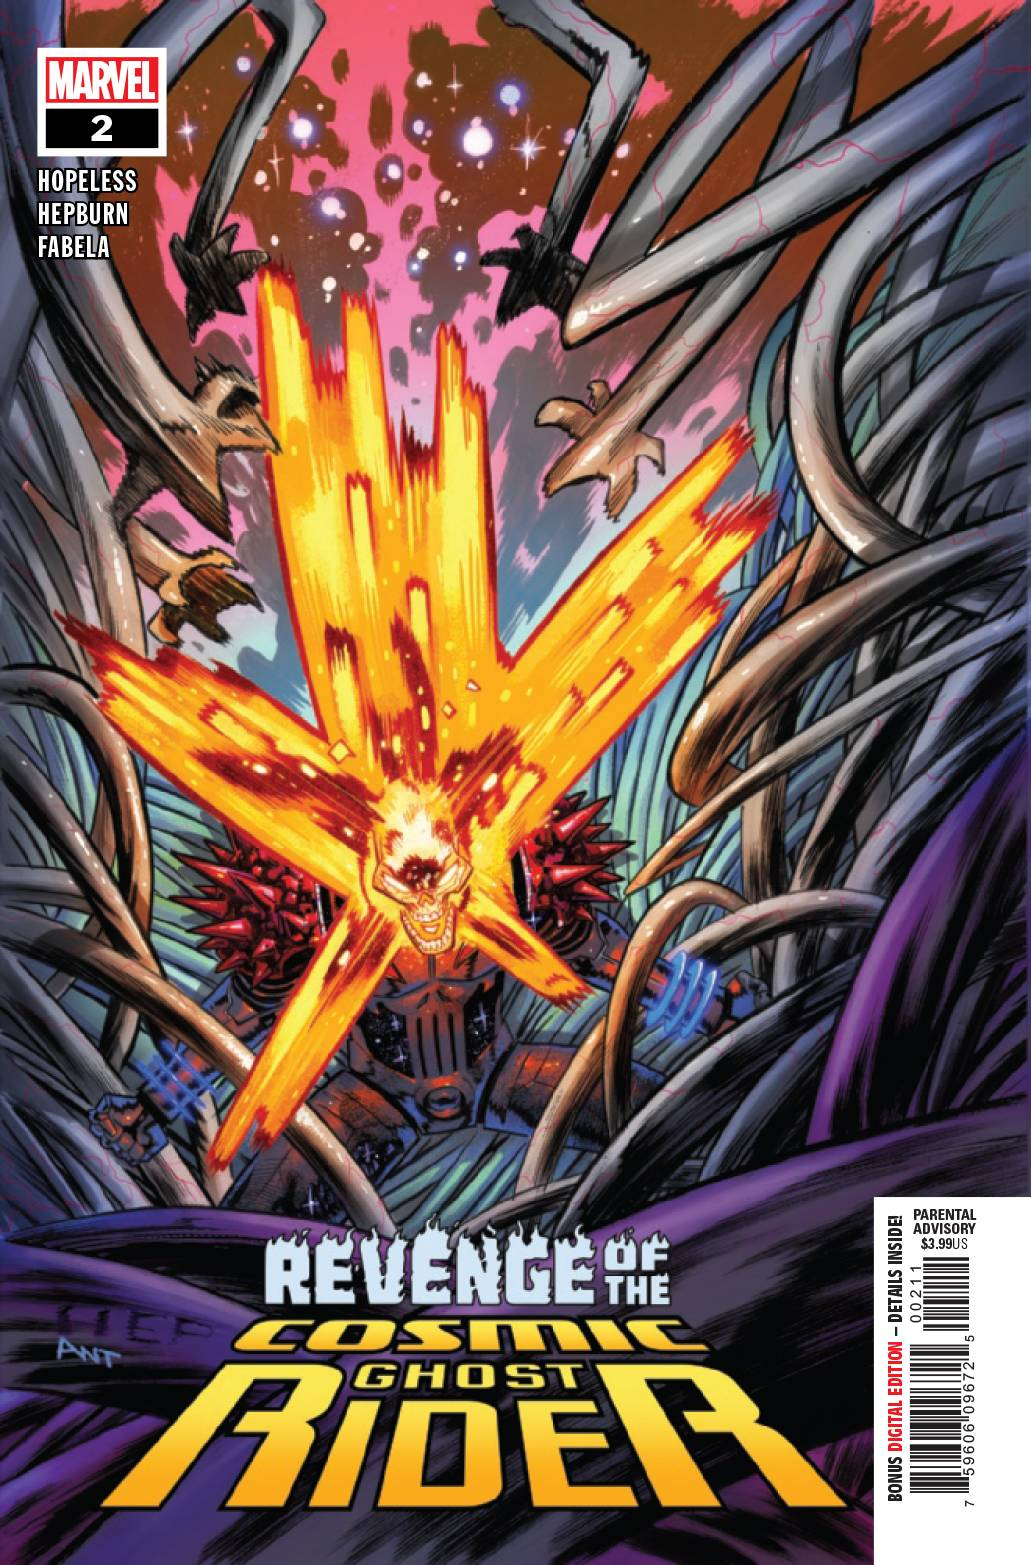 Revenge of the Cosmic Ghost Rider #2 (2020)